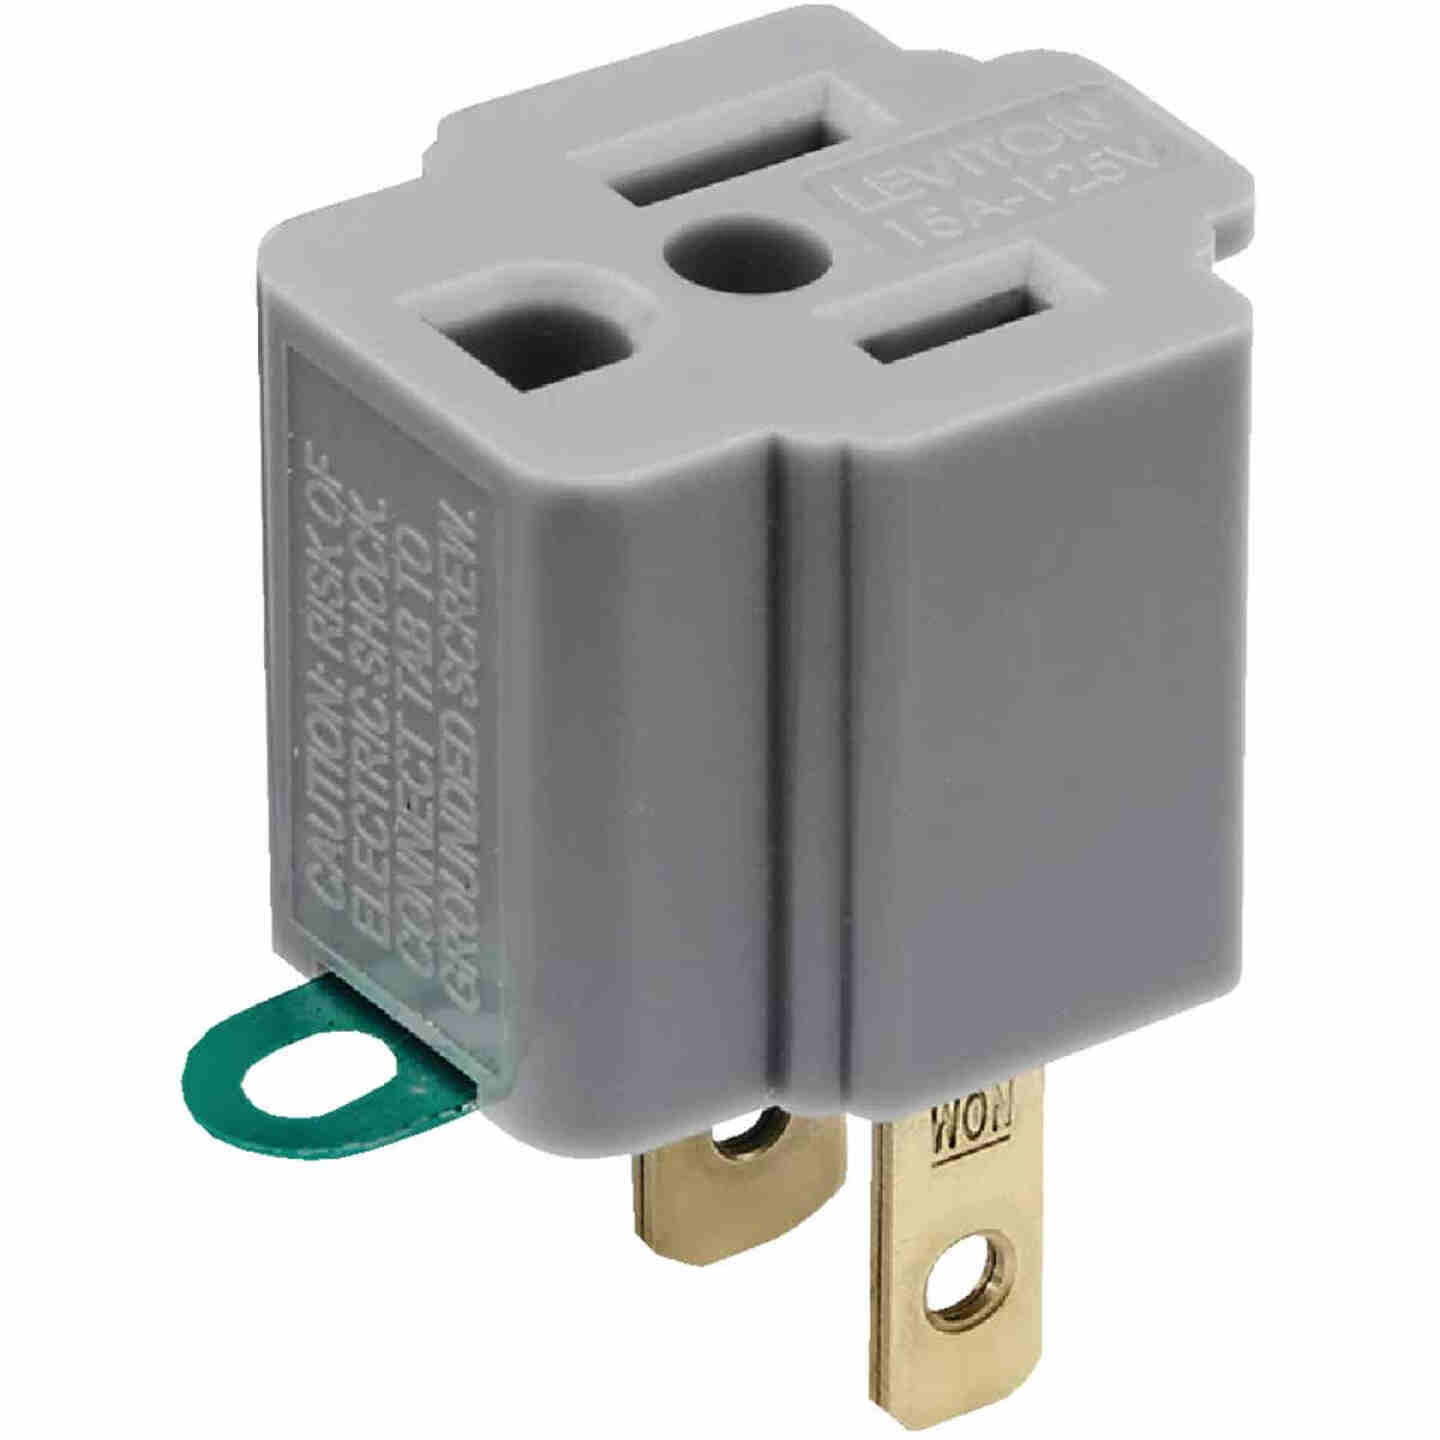 Leviton 15A 125V Gray Grounding Cube Tap Outlet Adapter Image 2